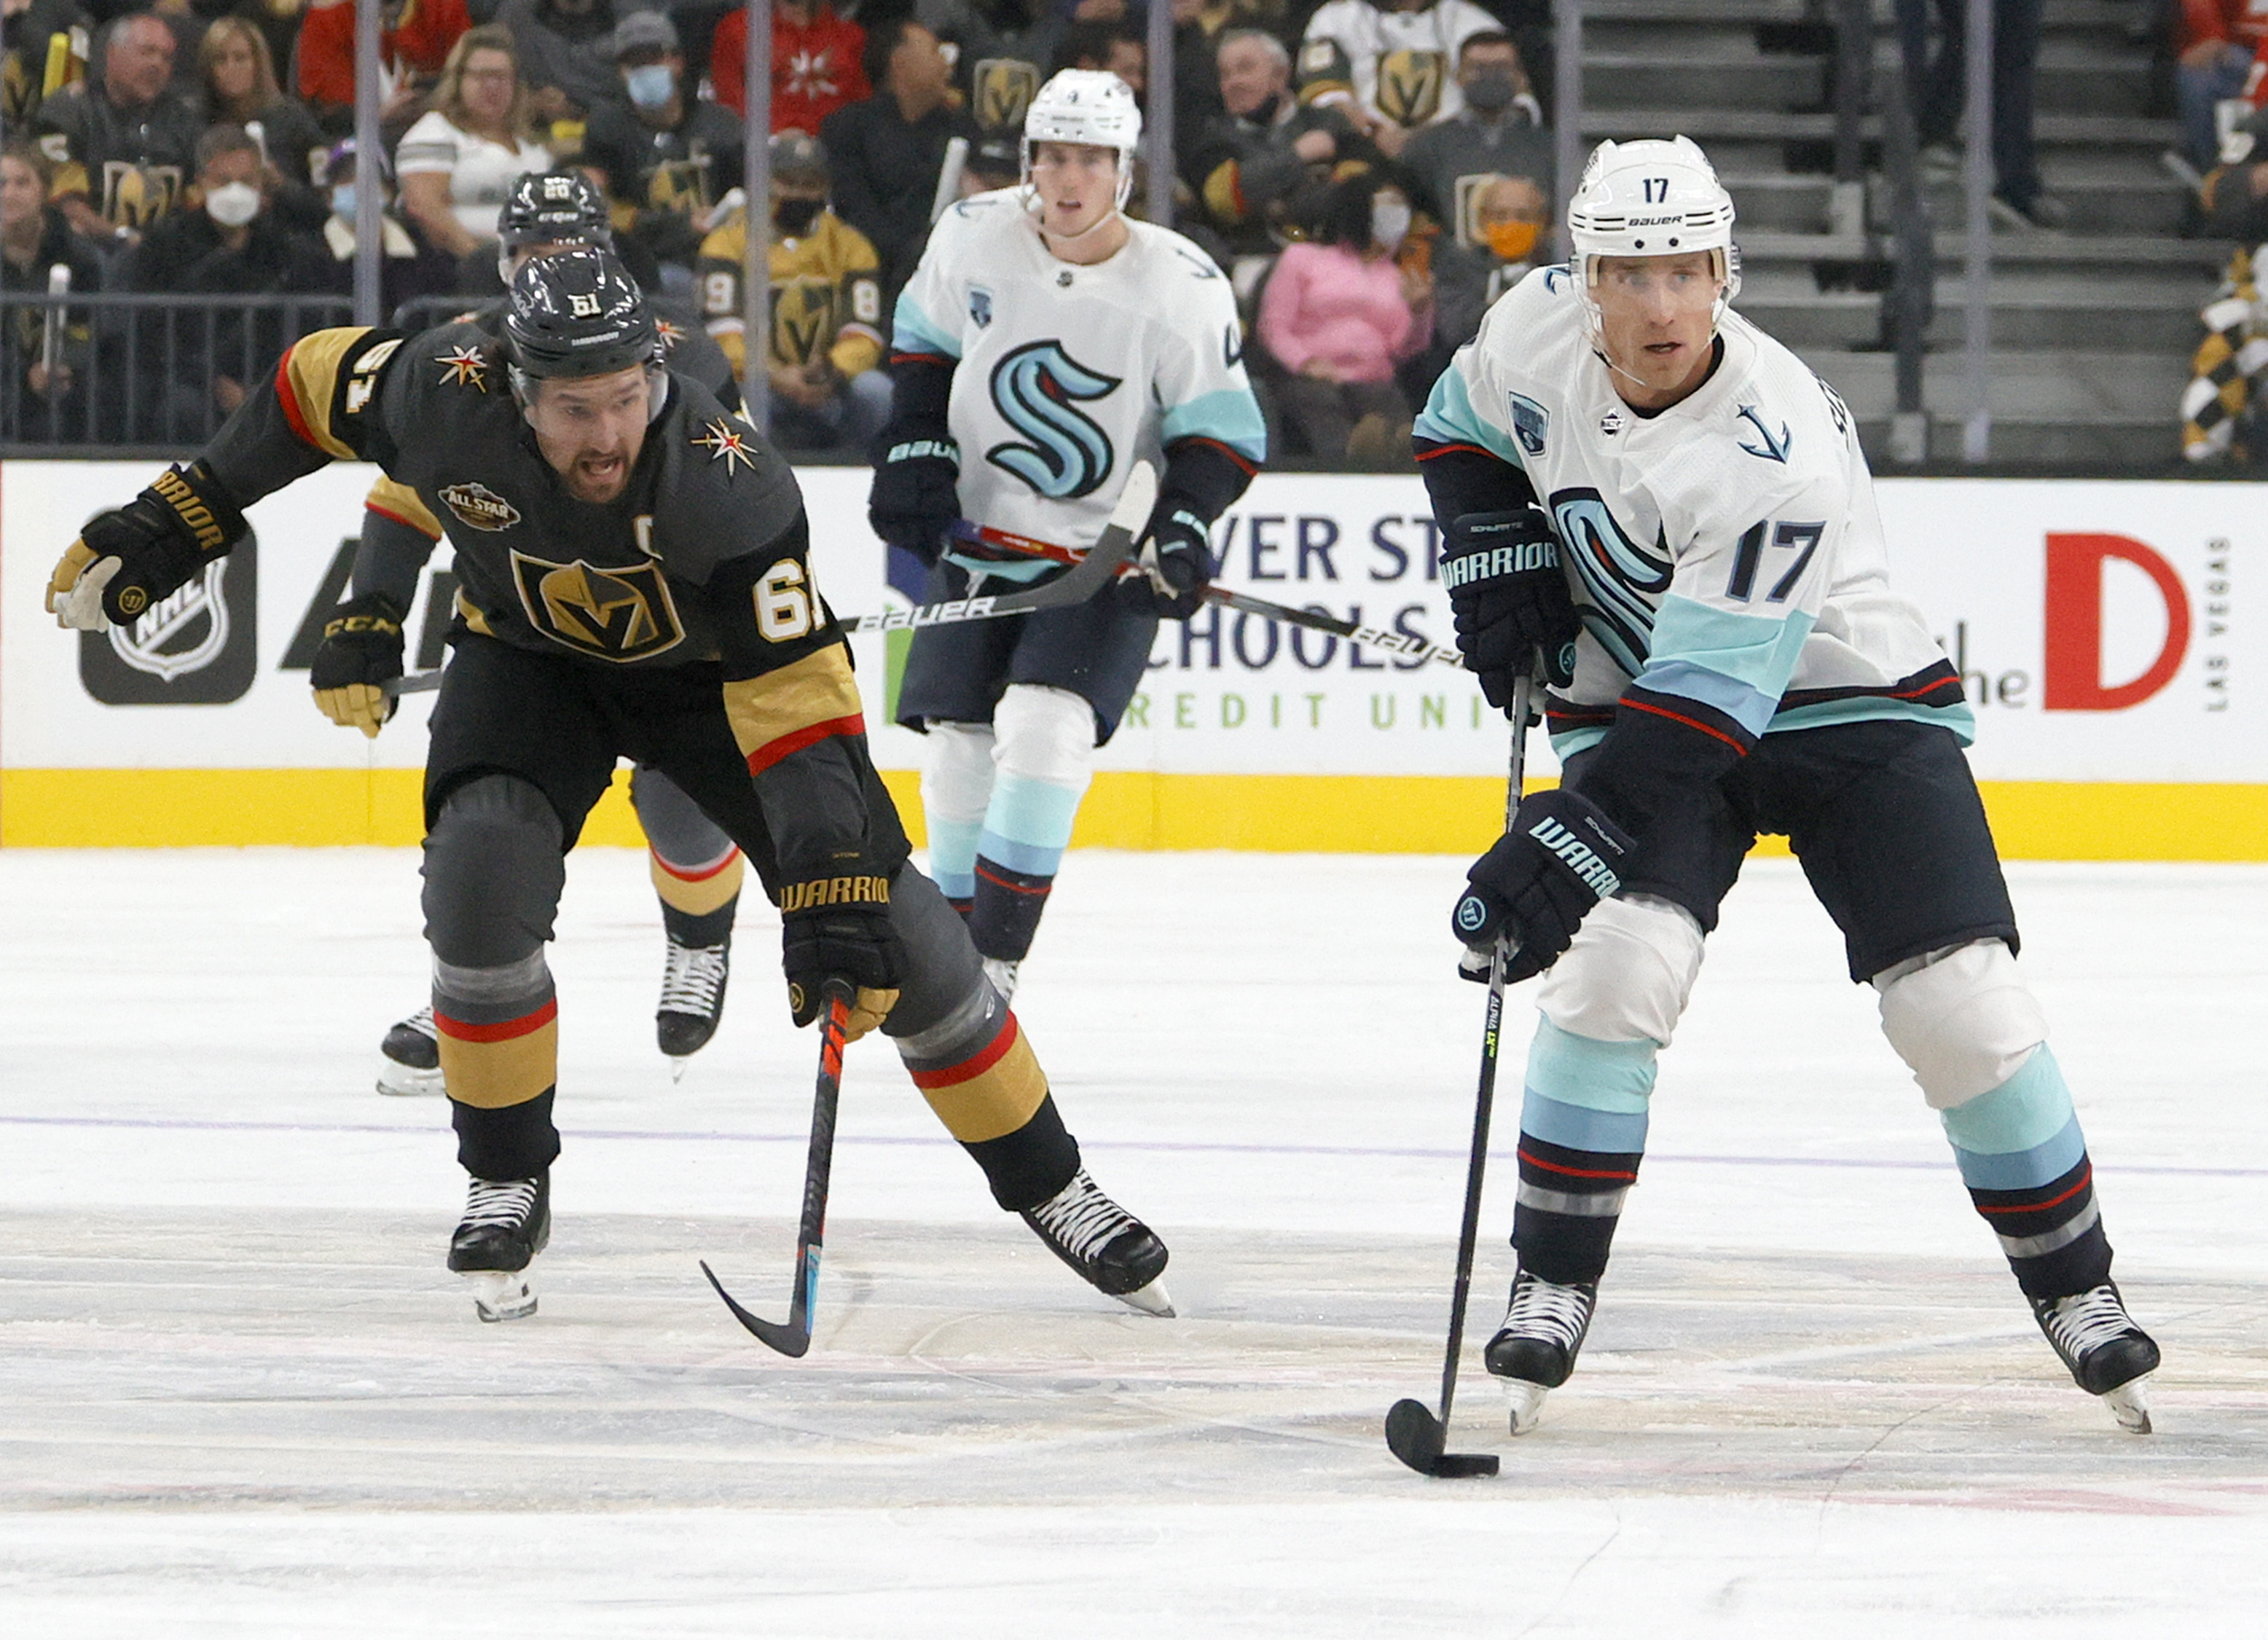 Jaden Schwartz #17 of the Seattle Kraken skates with the puck against Mark Stone #61 of the Vegas Golden Knights in the first period of the Kraken's inaugural regular-season game at T-Mobile Arena on October 12, 2021 in Las Vegas, Nevada. The Golden Knights defeated the Kraken 4-3.